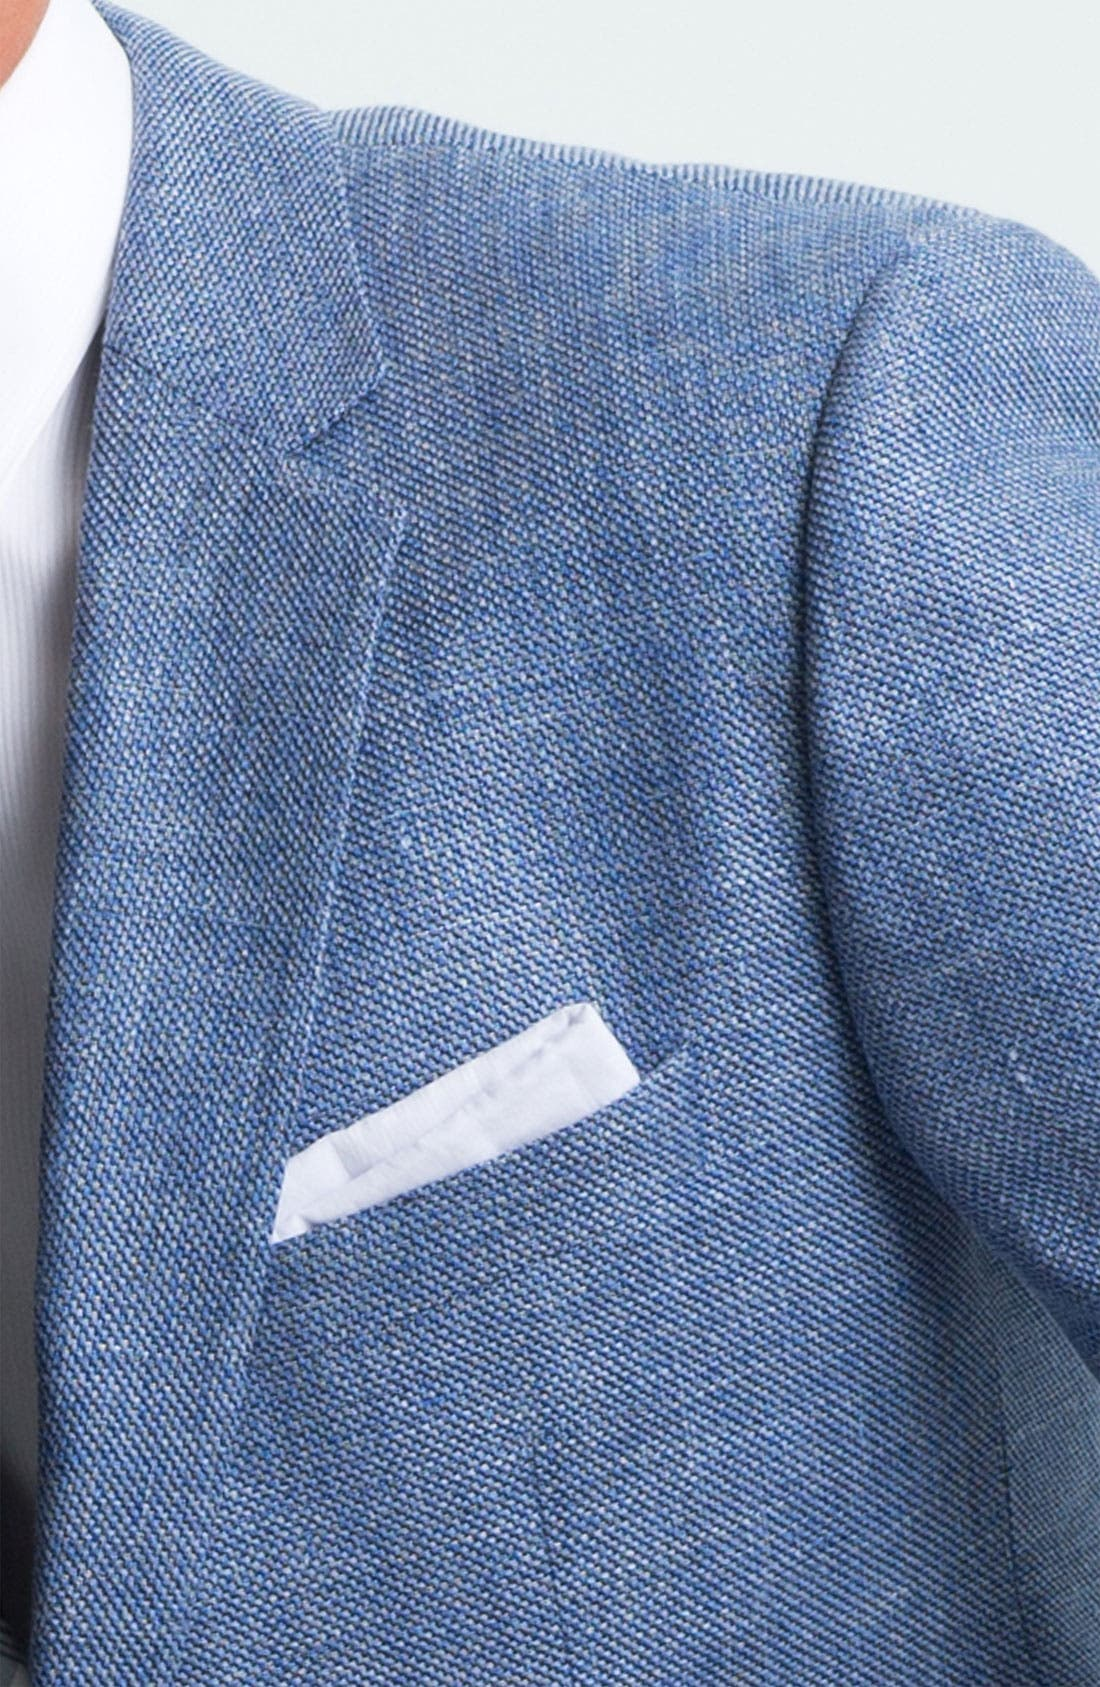 Alternate Image 3  - BOSS Black 'Smith' Trim Fit Sportcoat